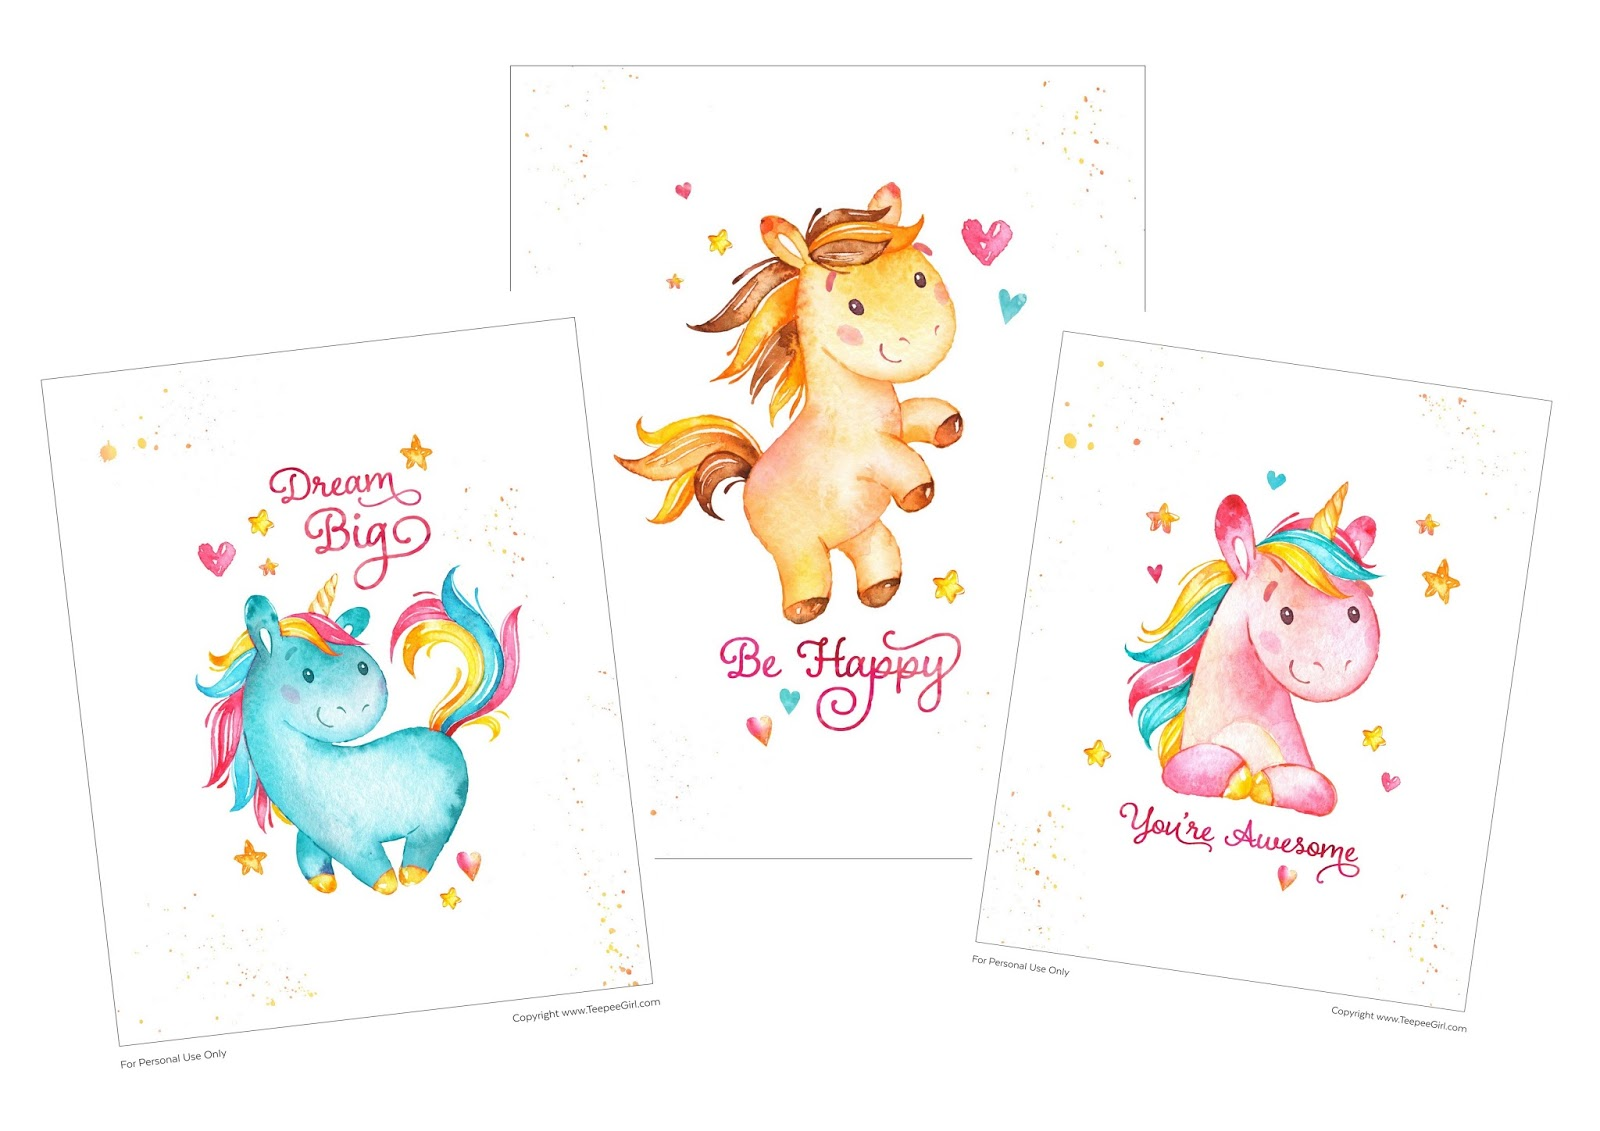 image relating to Free Printable Unicorn called Absolutely free Printable Unicorn Posters. - Oh My Fiesta! inside english